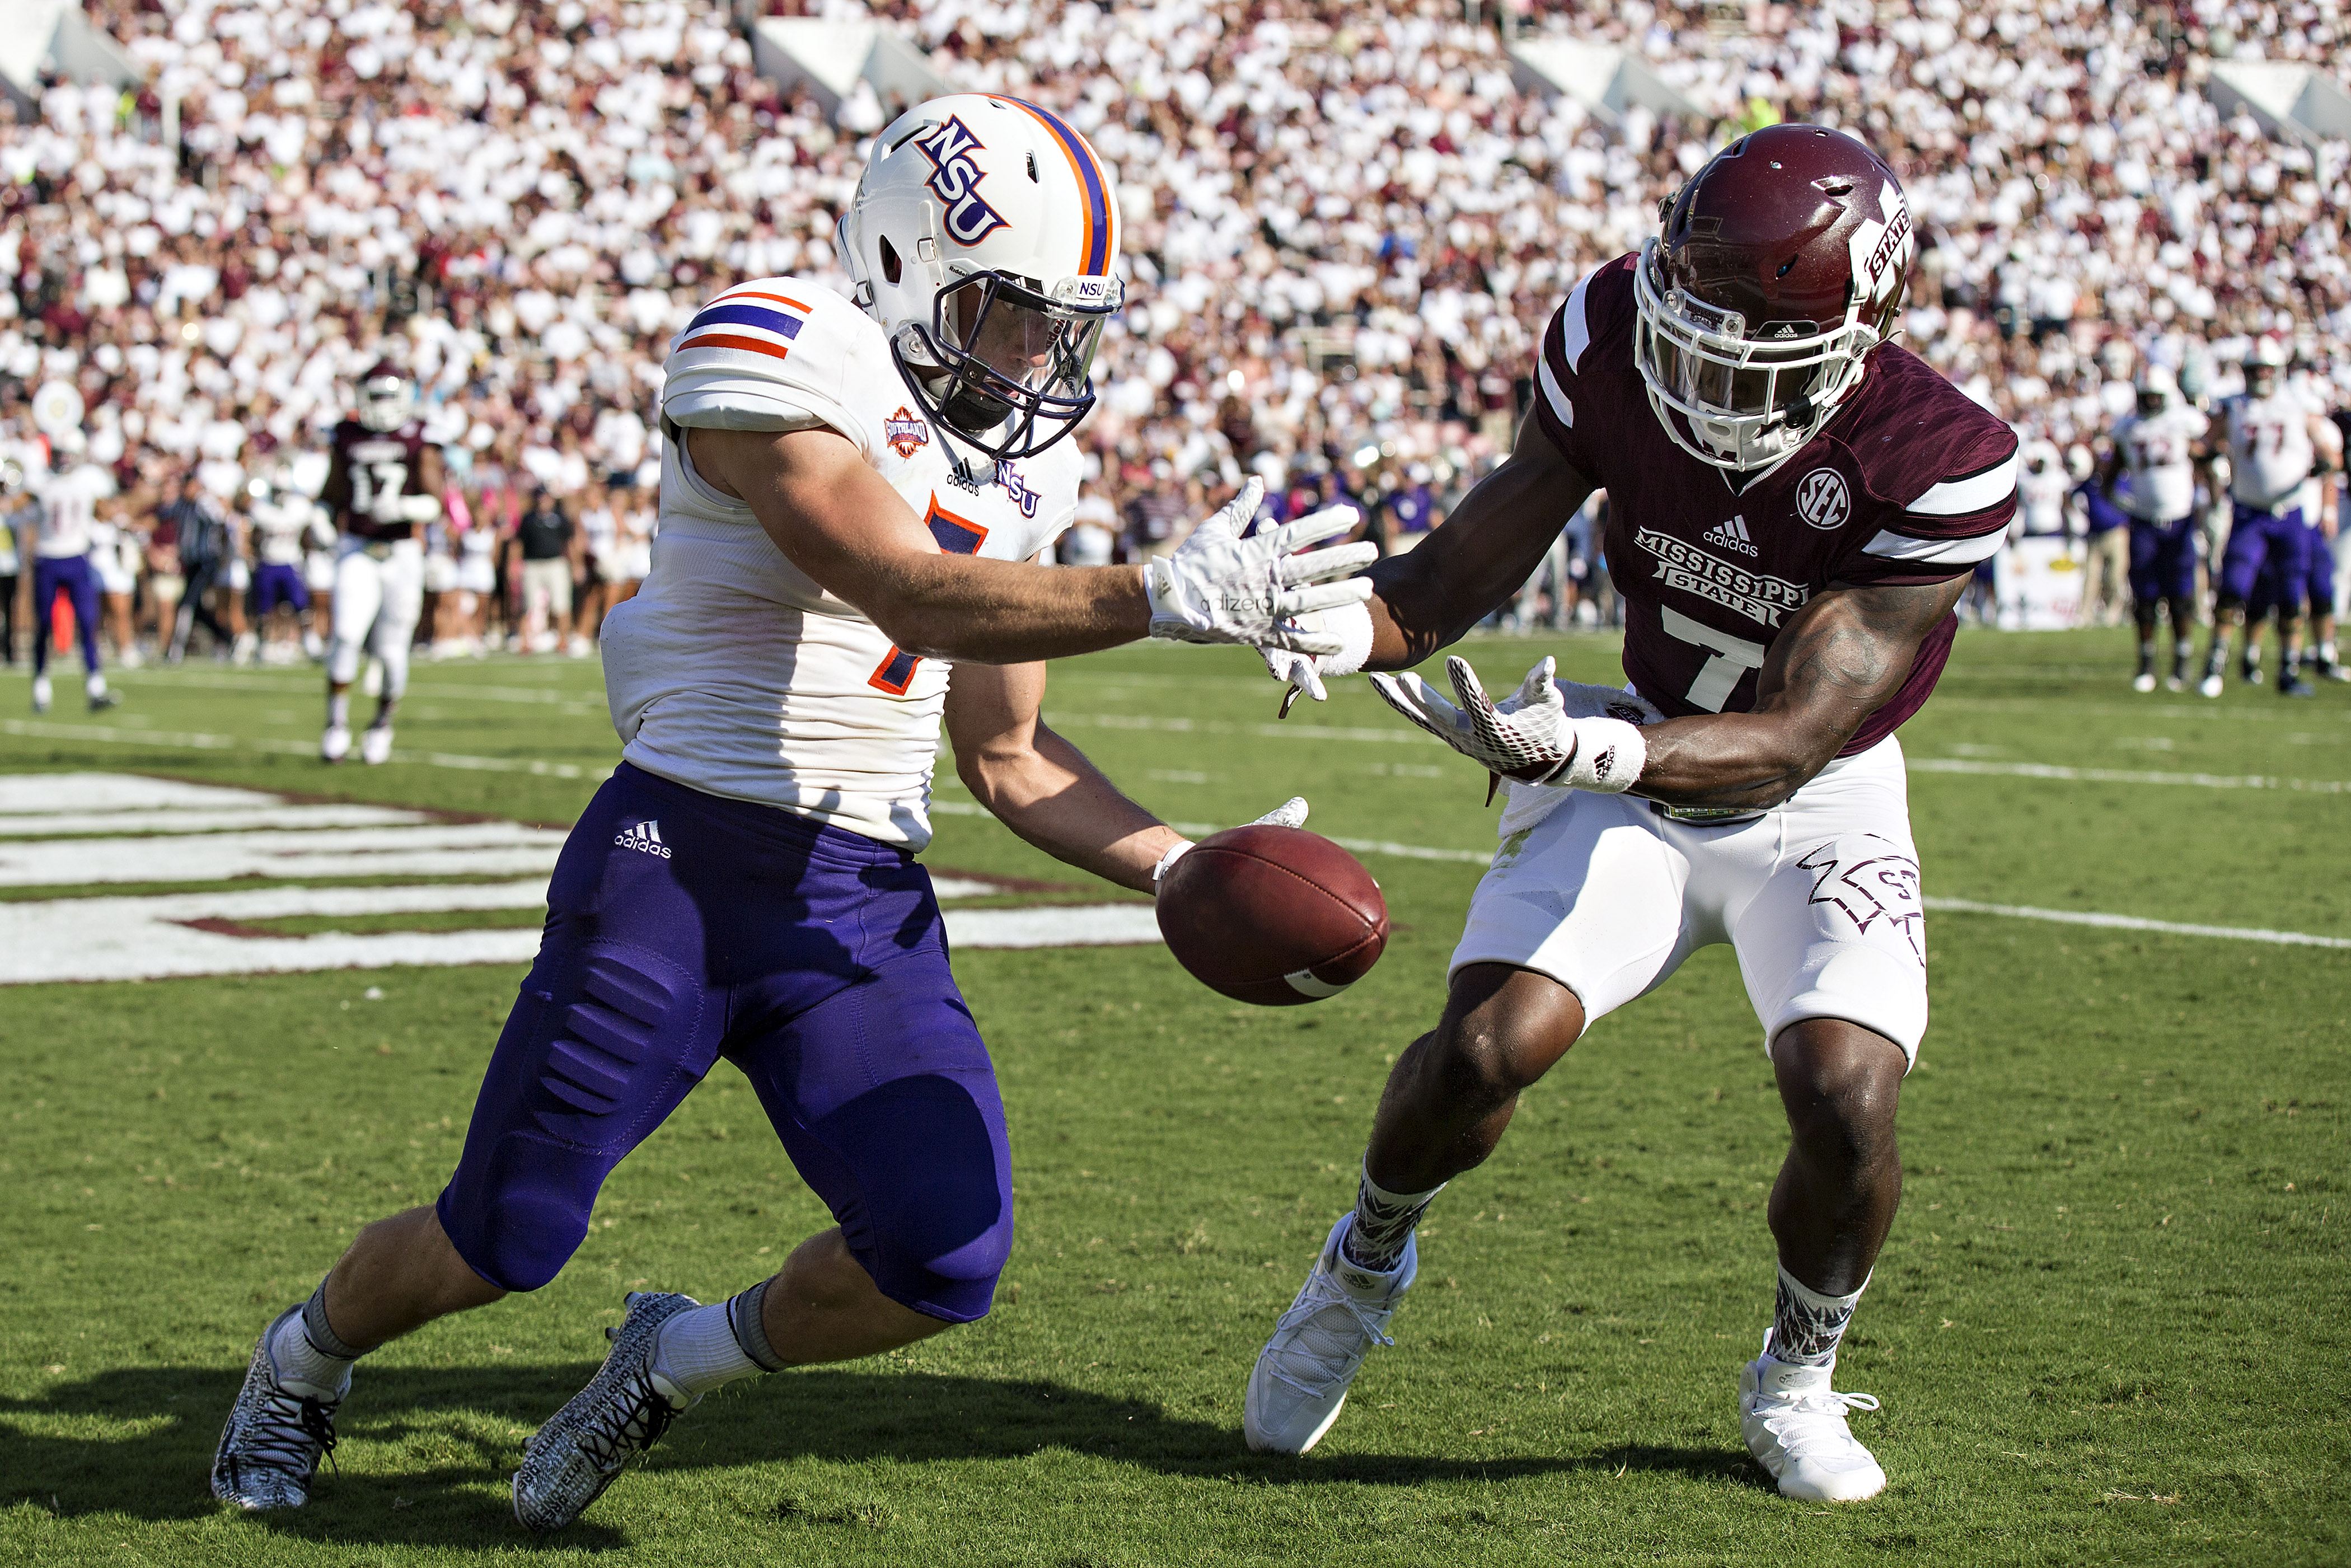 The Buffalo Bills' newest wide receiver, Ed Eagan (7) played in 44 for college games for Northwestern State. (Getty Images)